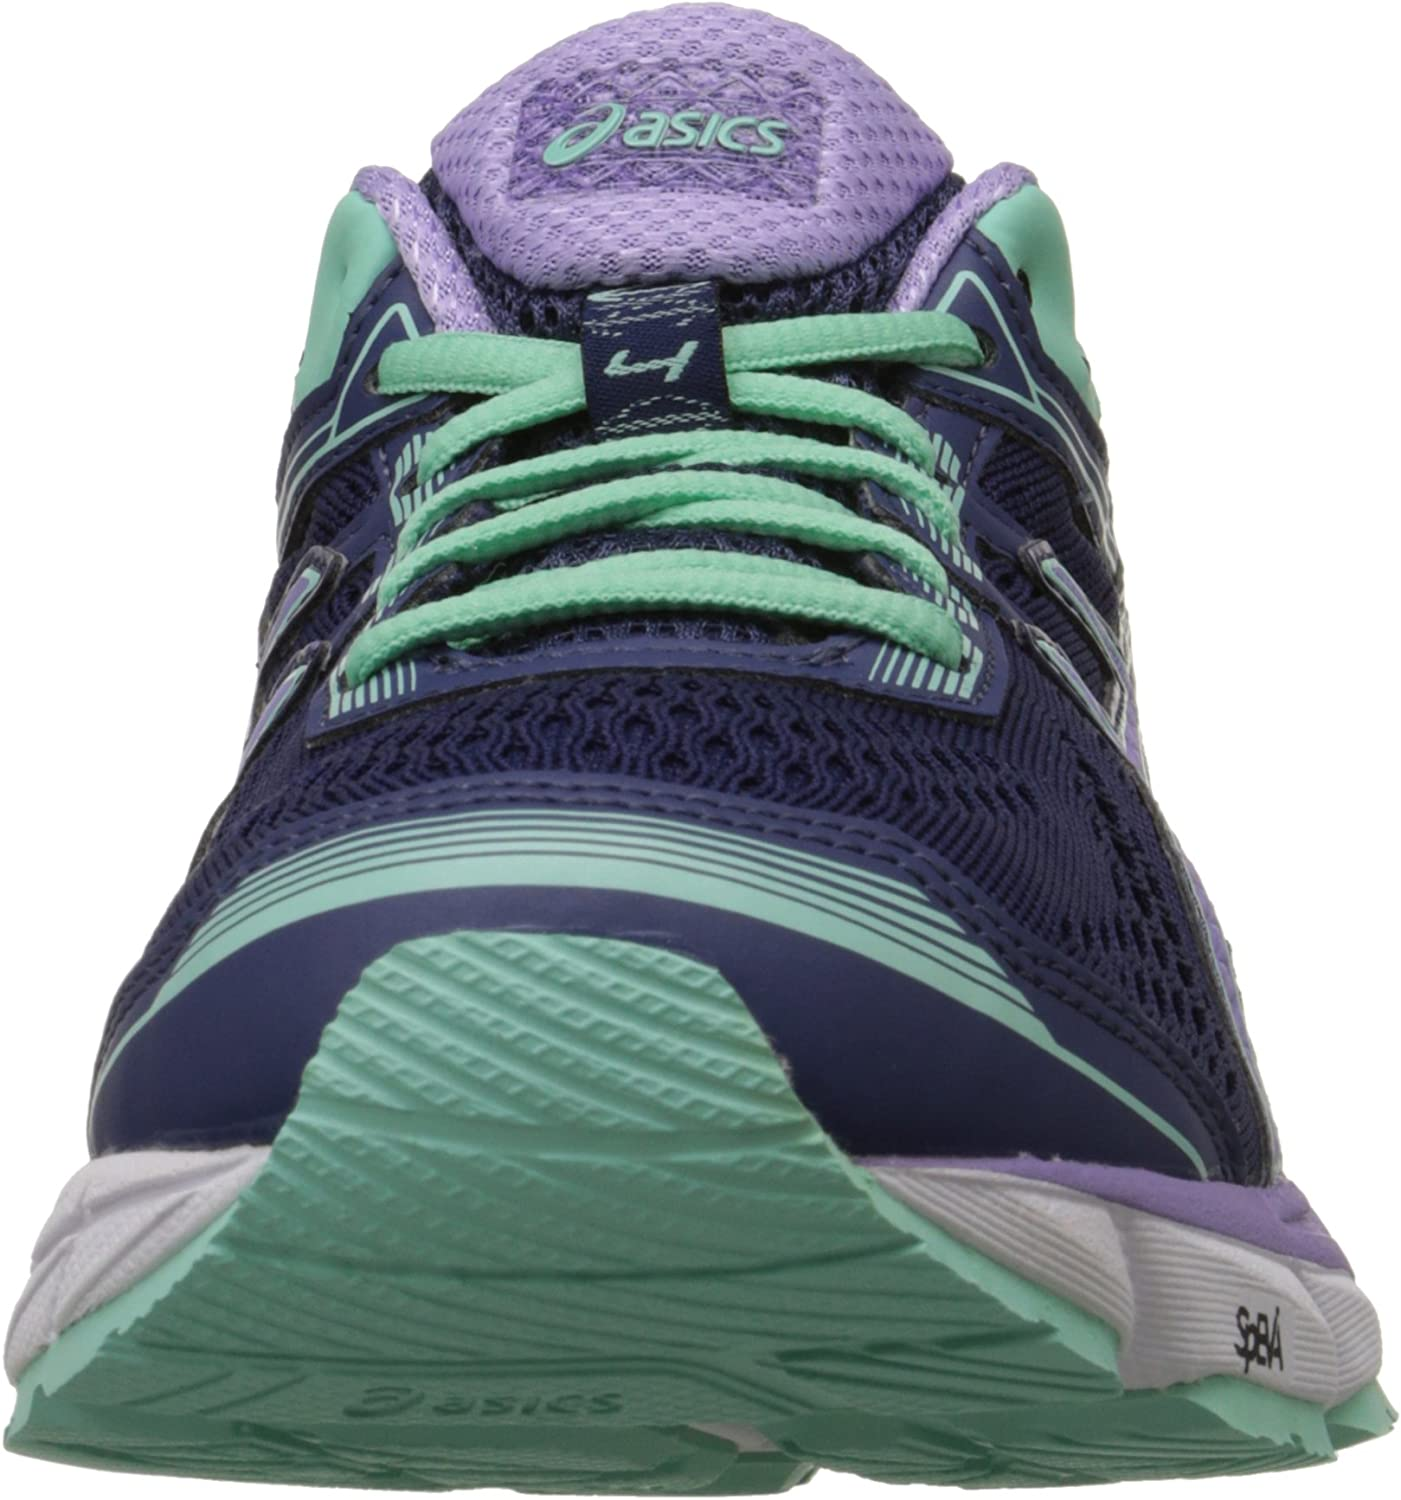 ASICS Women s GEL-Nimbus 17 Running Shoe